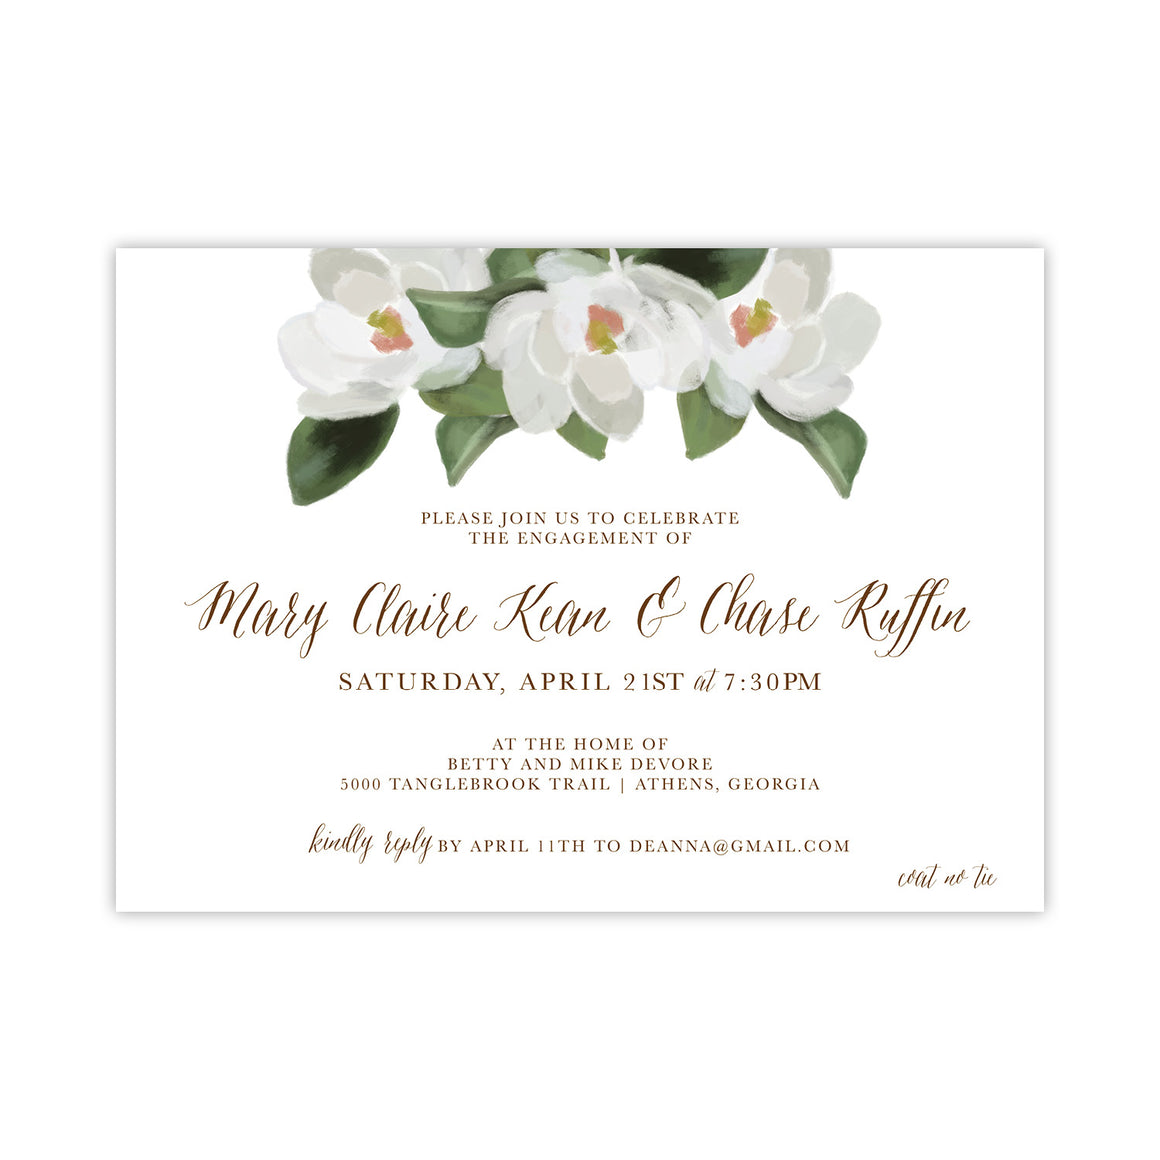 Magnolia Engagement Party Invitation